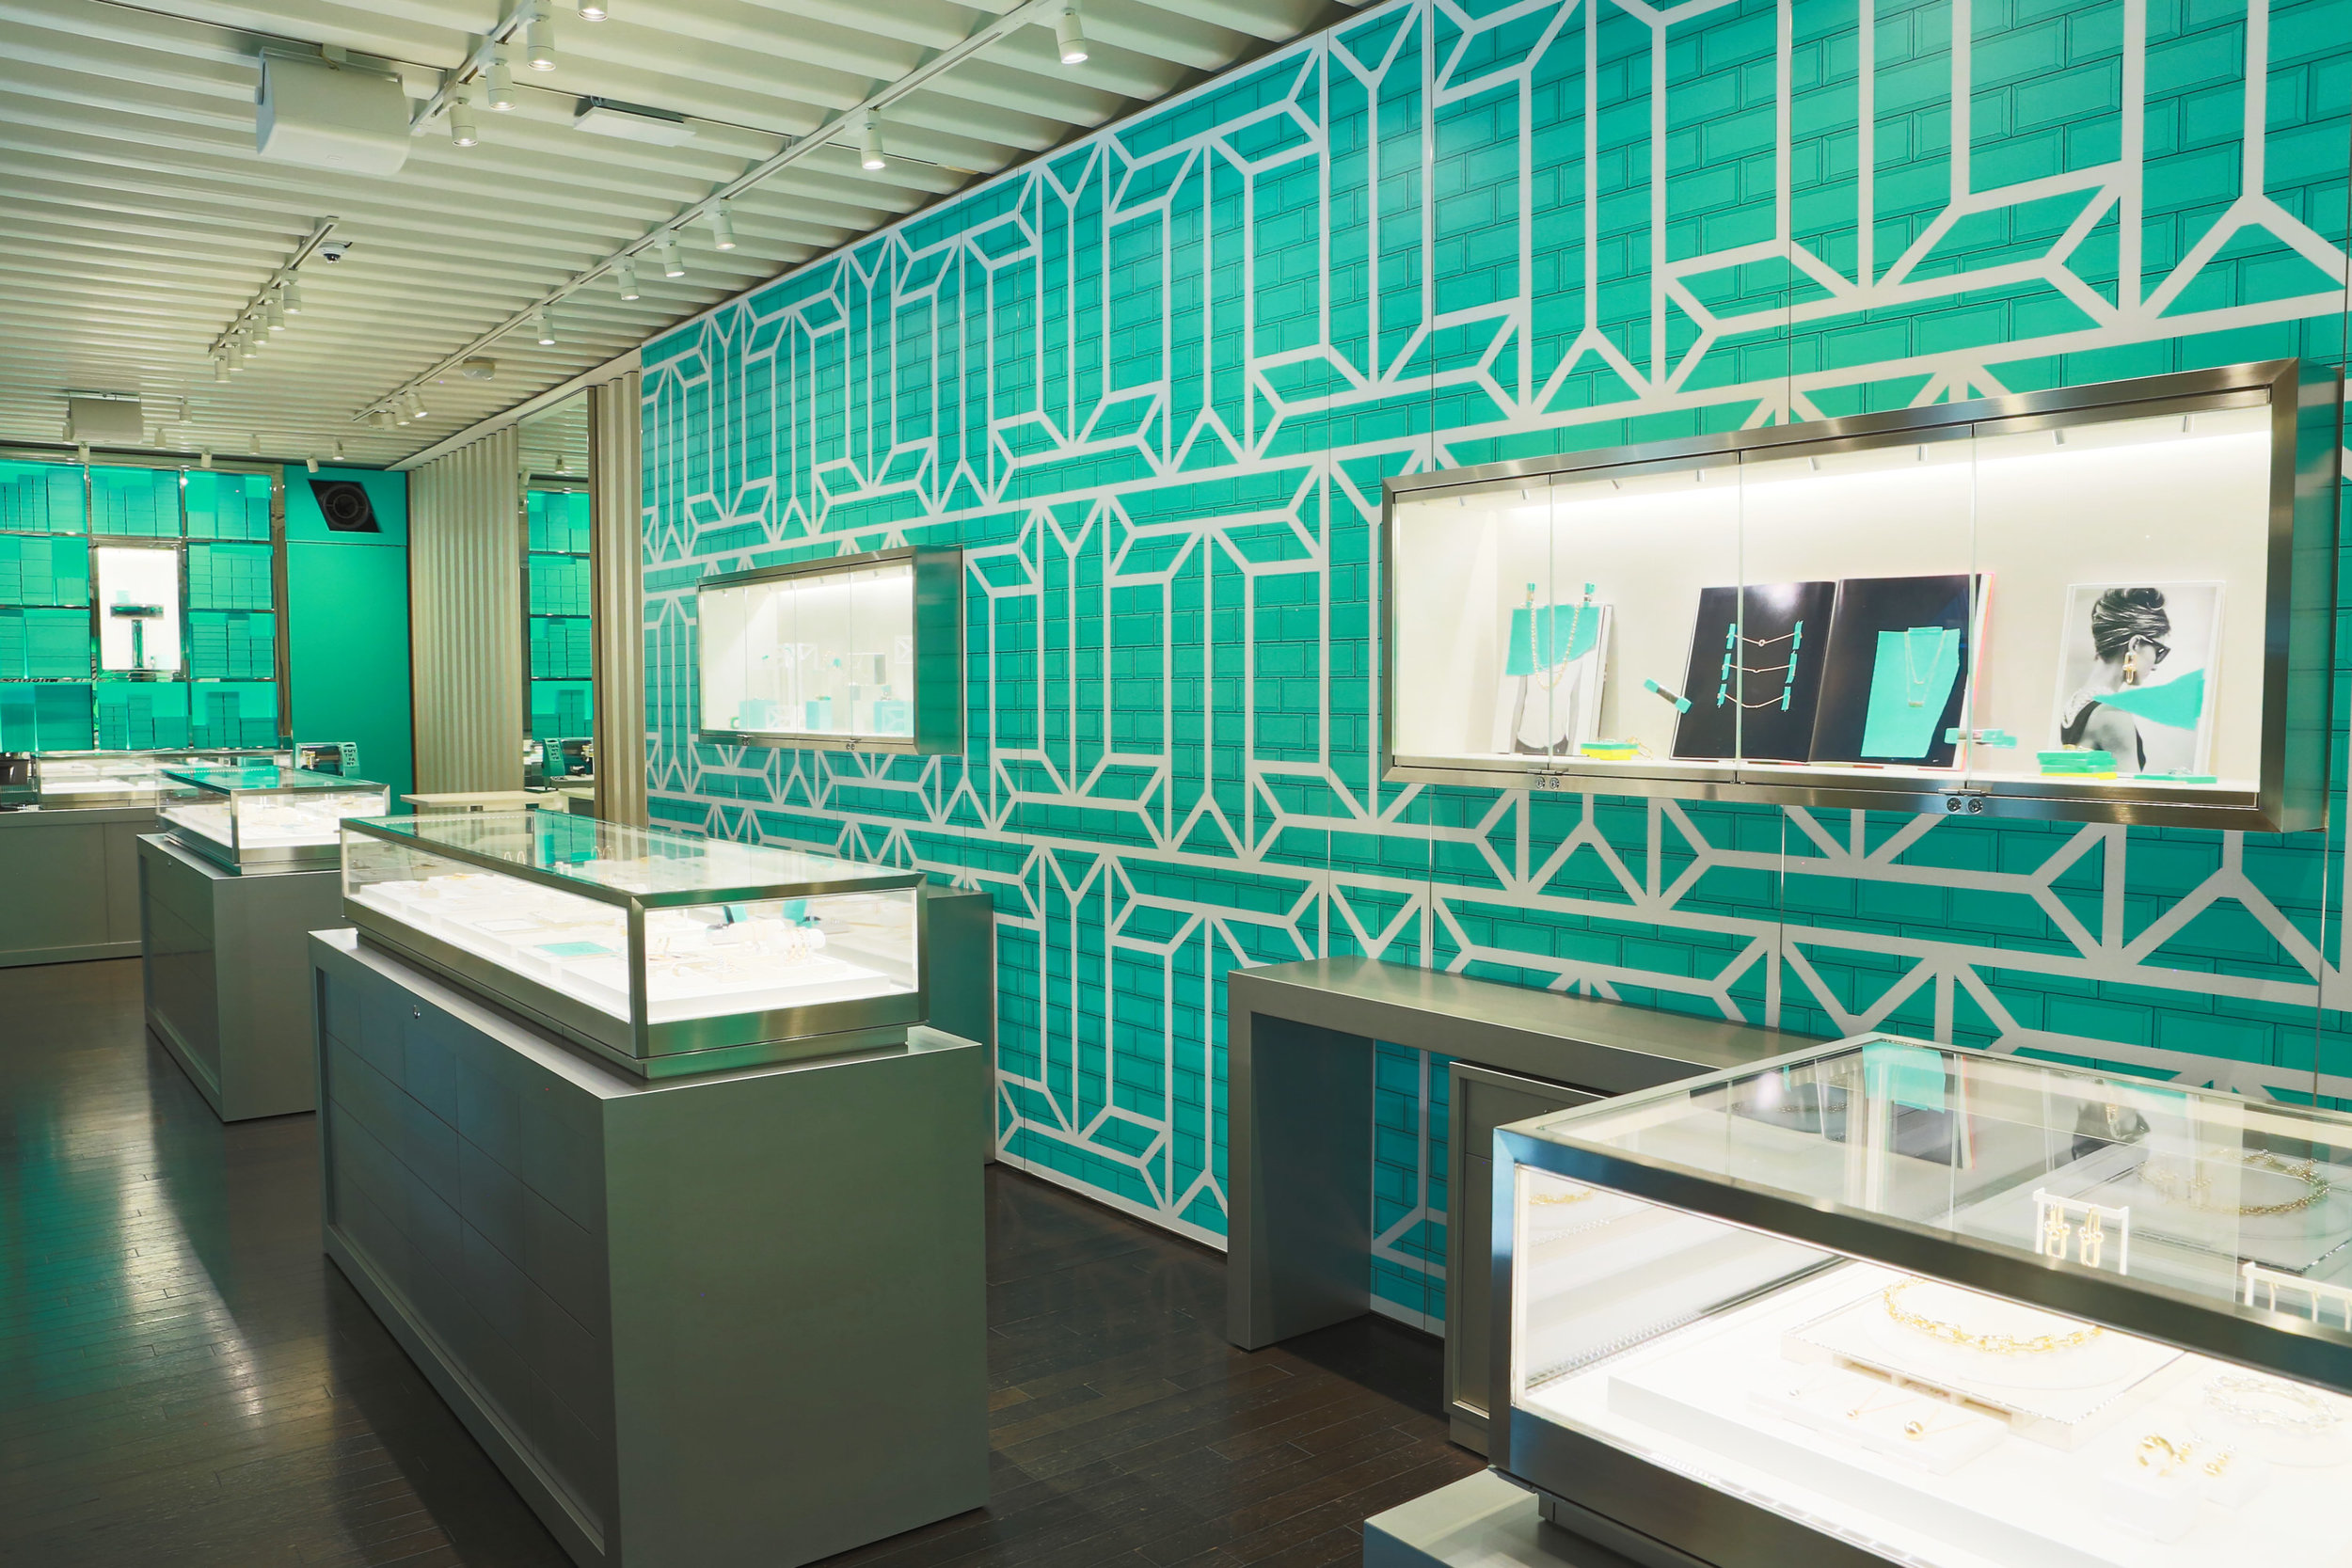 The caselines are complemented by a wall inspired by the famous Tiffany Blue Box® with floor-to-ceiling shelves to display pieces from jewelry and Home & Accessories collections, creating a captivating atmosphere.